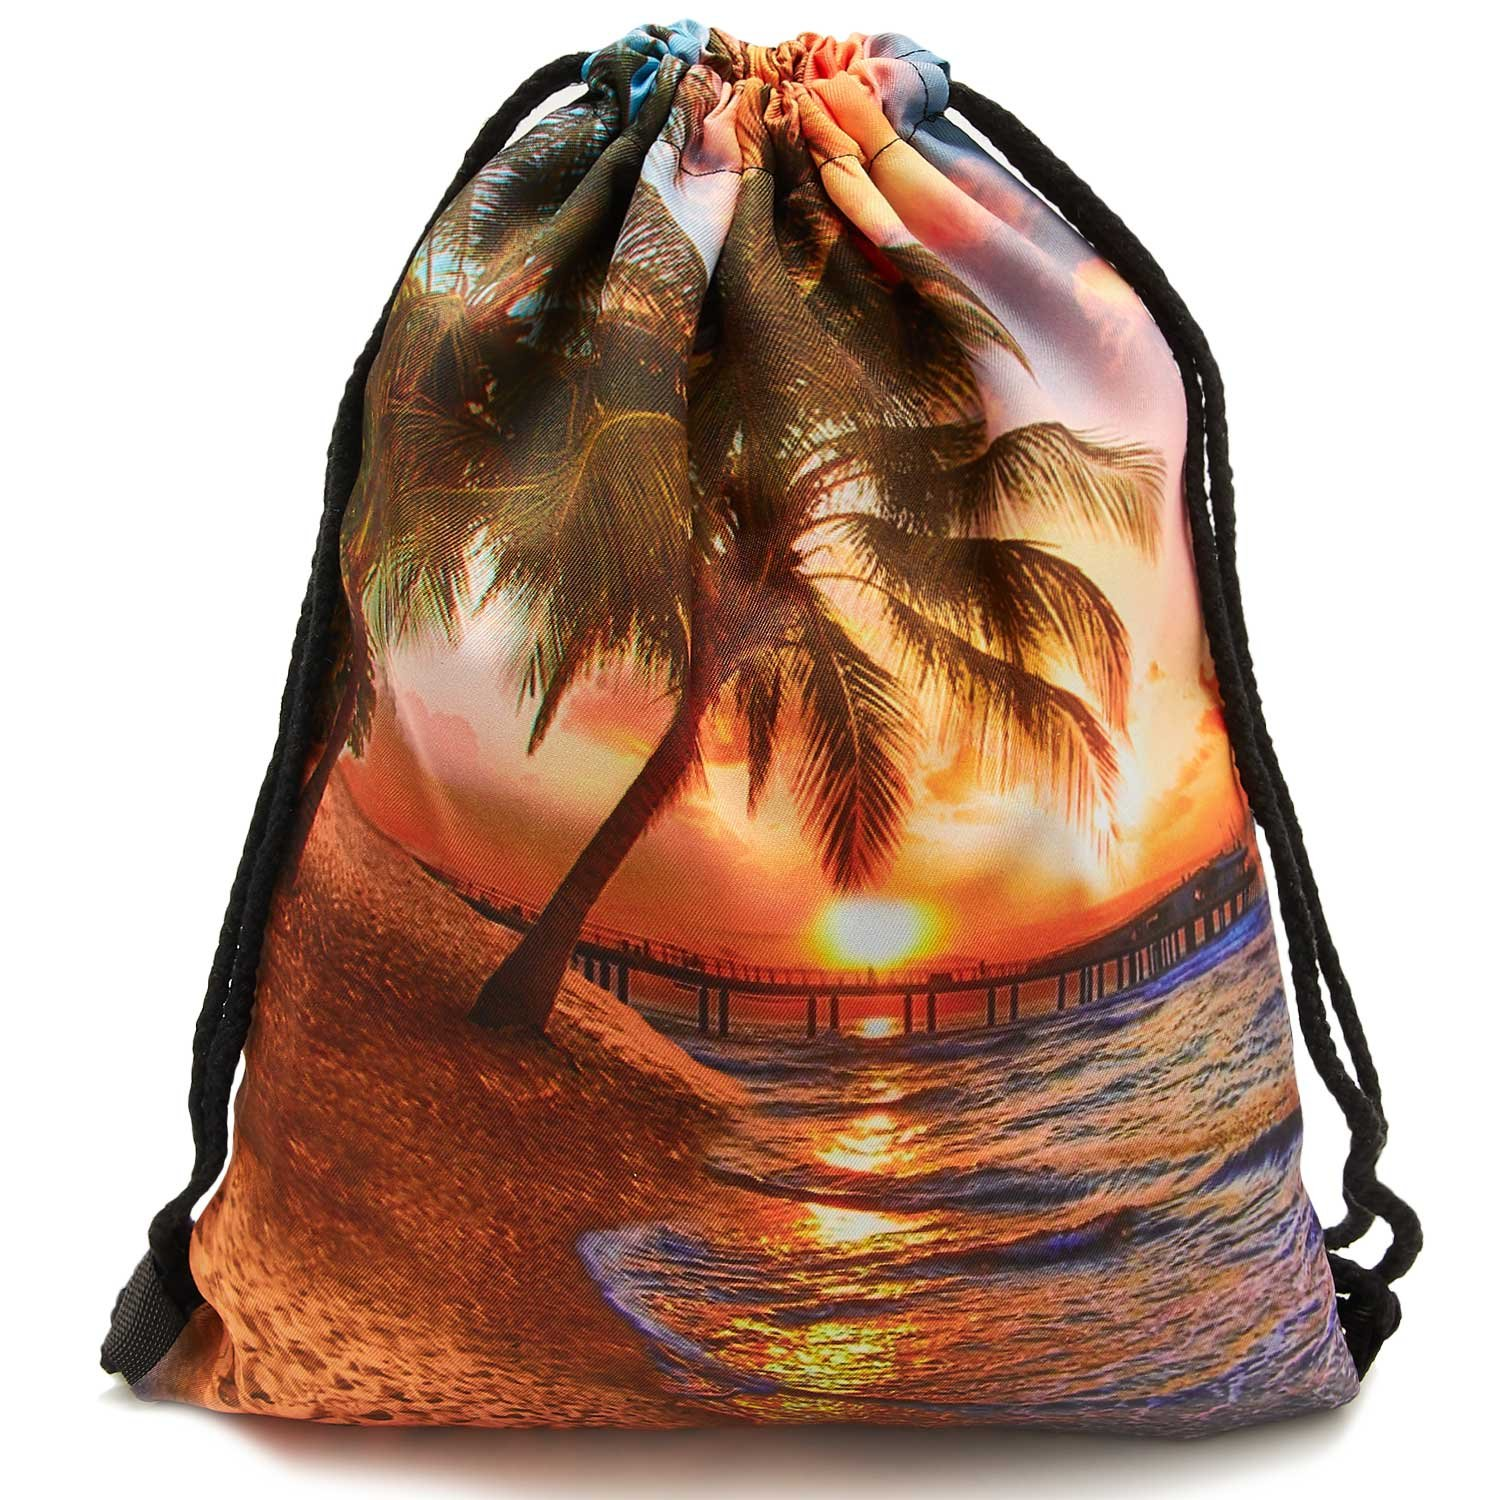 TUONROAD Travel Portable Travel Backpack Cute Cosmetic Pouch Storage 3D Pattern Summer Vacation Beach Theme Sunset Palm Tree the Setting Sun Cool Cinch Bags Zipper Handy Cosmetic Pouch